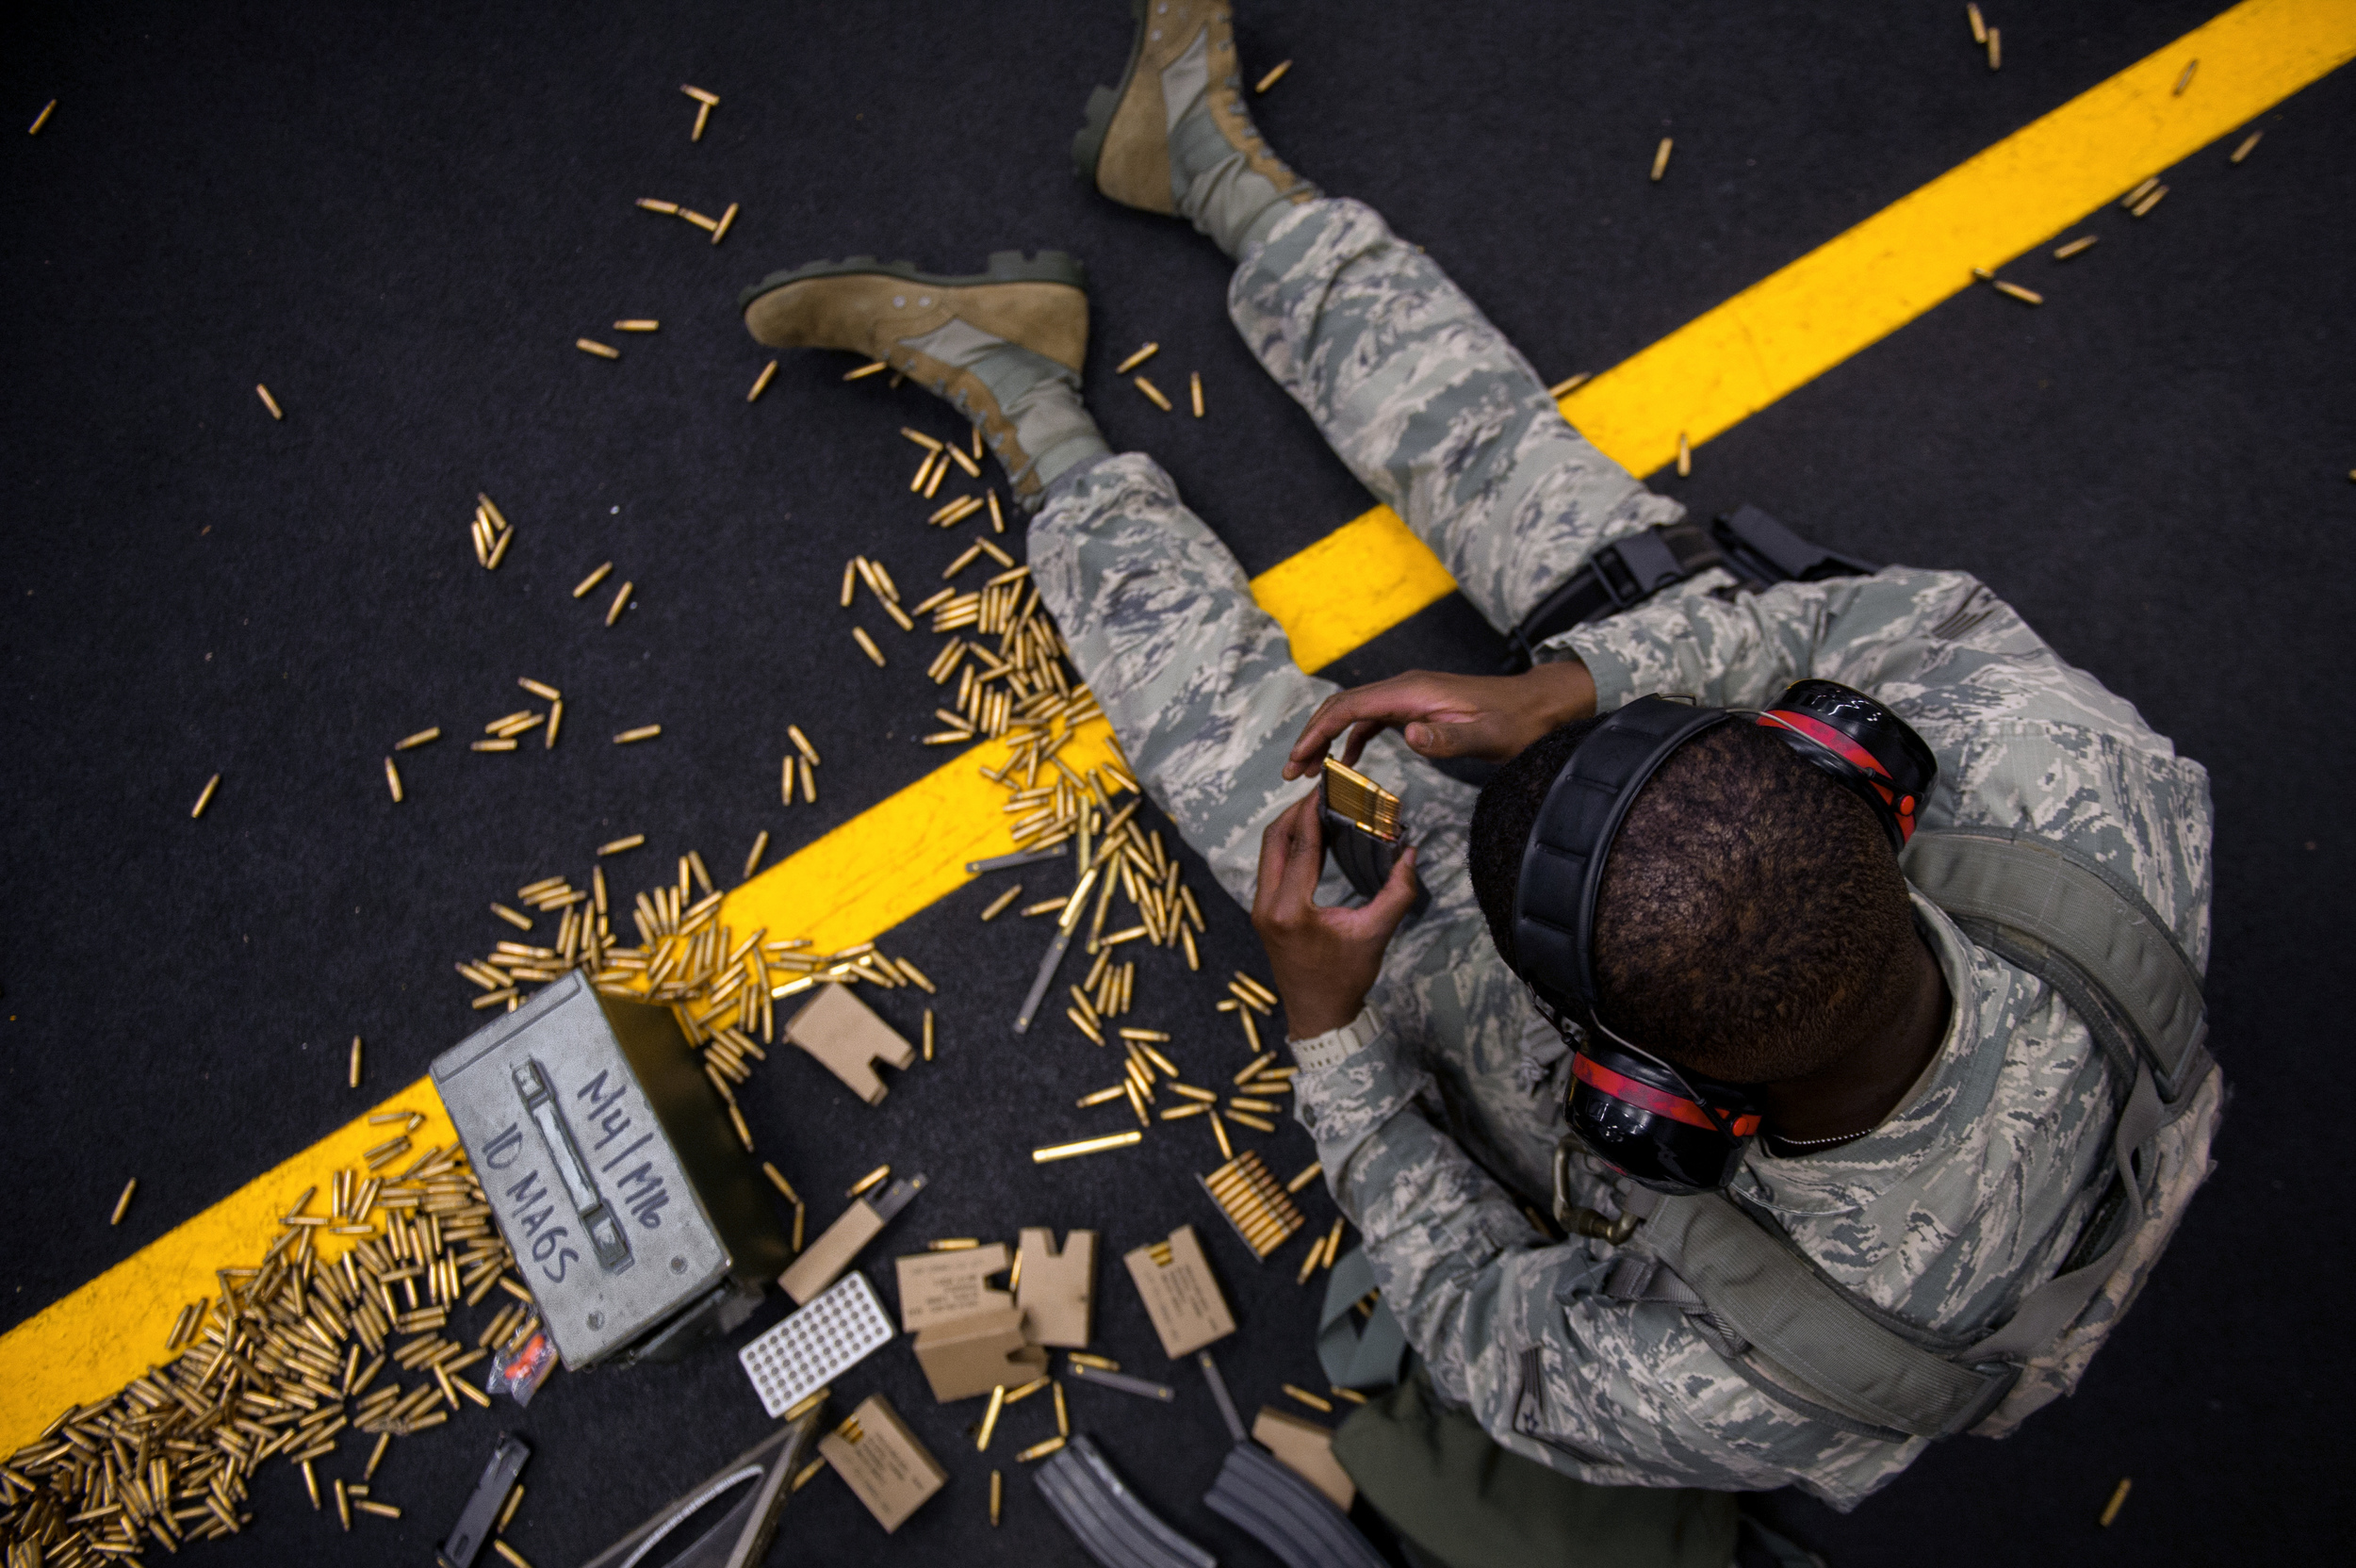 Staff Sgt. Louis Bradshaw, 374th Security Forces Squadron criminal investigator, loads rounds into a magazine at Yokota Air Base, Japan, Oct. 8, 2015. Airmen load the rounds in a magazine to be fired at a target sheet set up at a certain distance down the firing range. (U.S. Air Force photo by Airman 1st Class Delano Scott/Released)